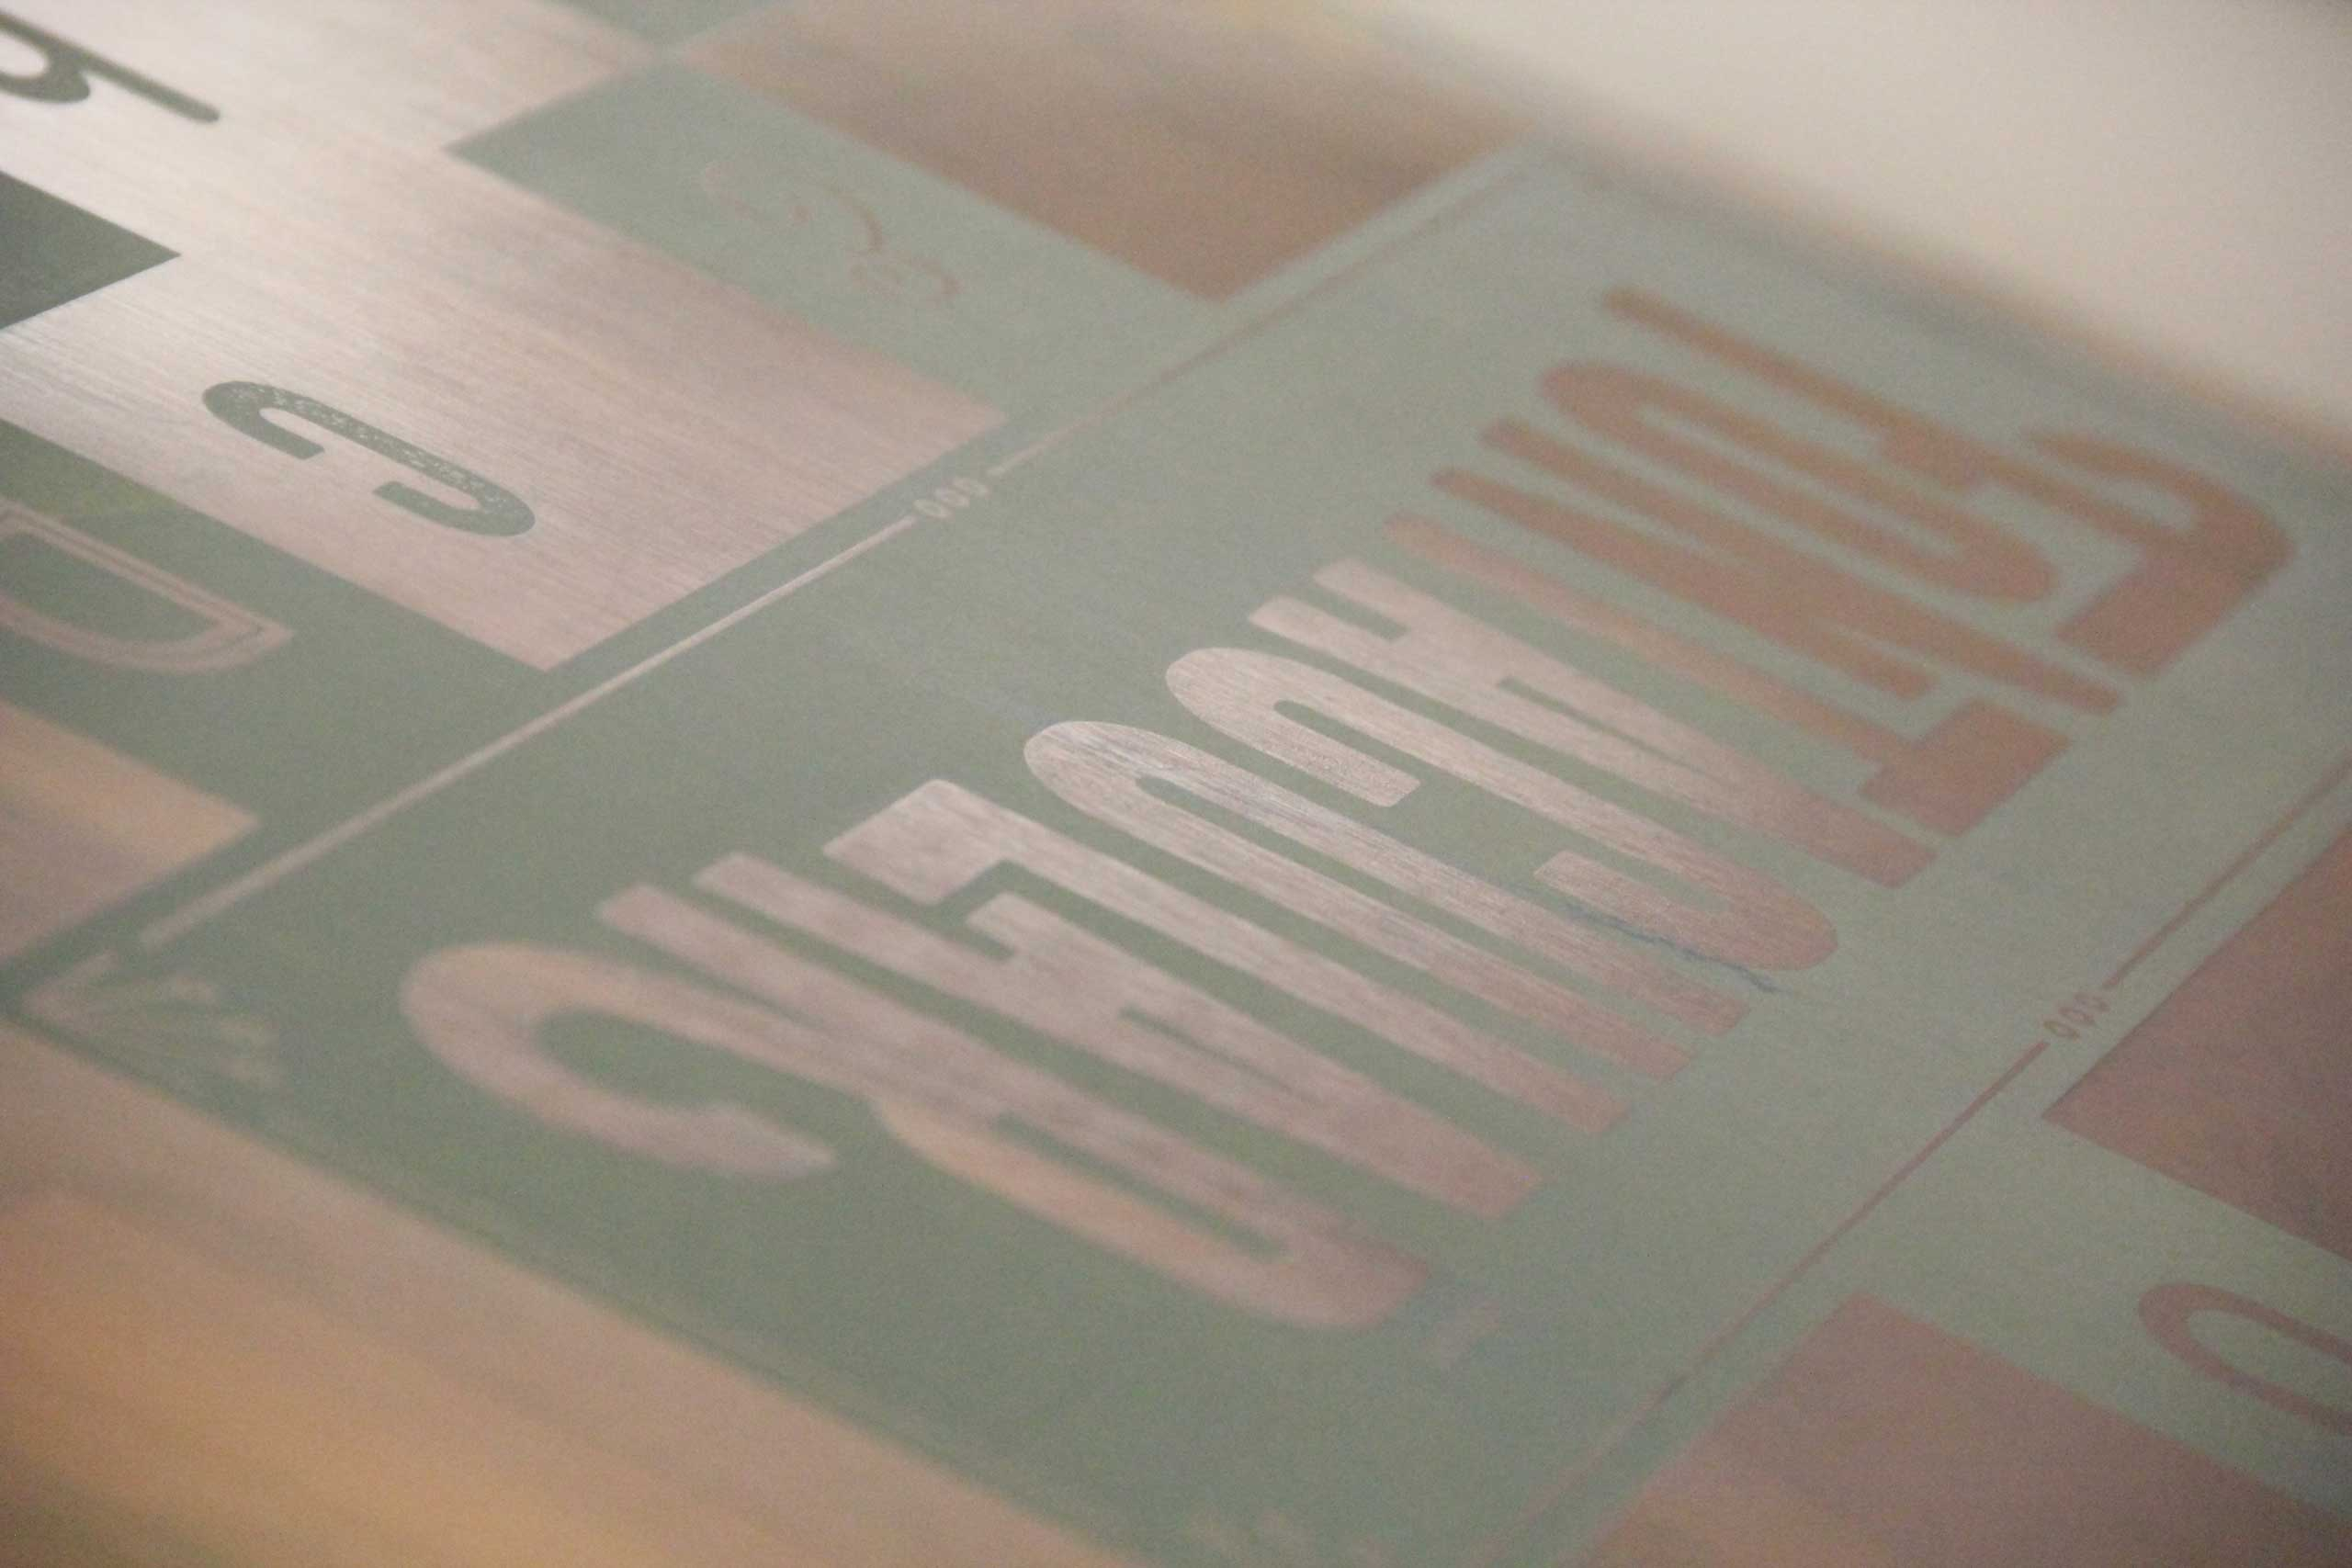 Fonts.com Fontacular screen printed poster